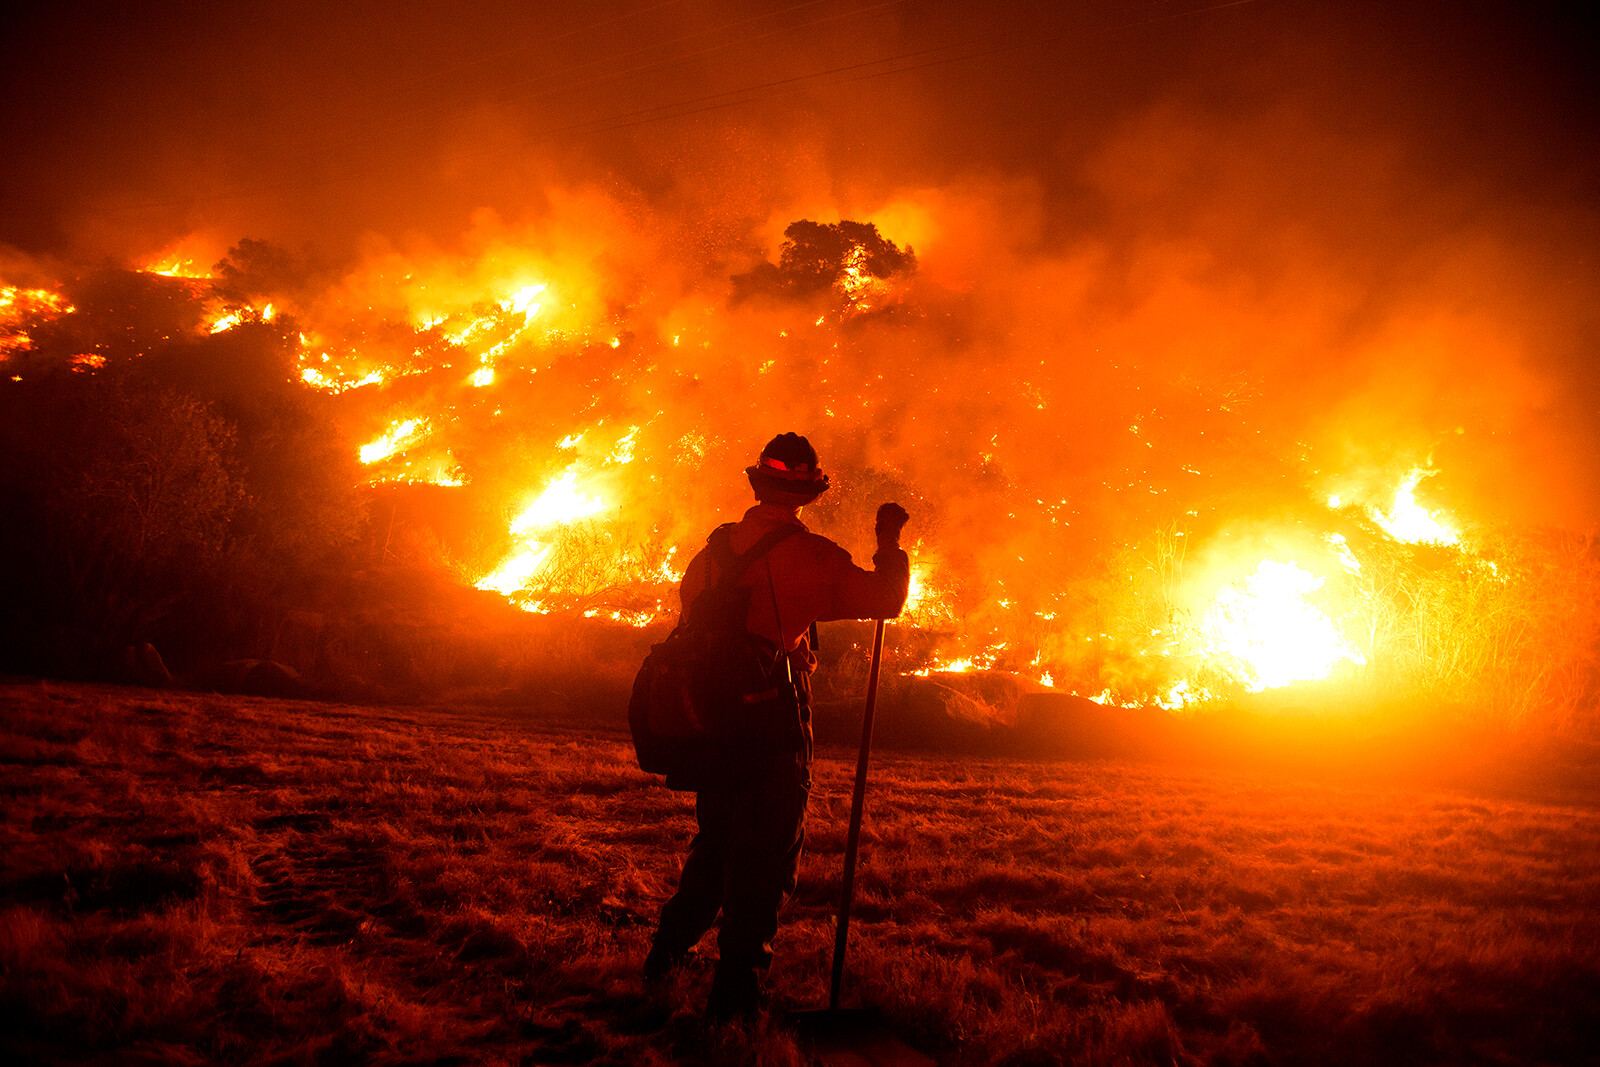 Wildland firefighters could get $20,000 raise from infrastructure bill